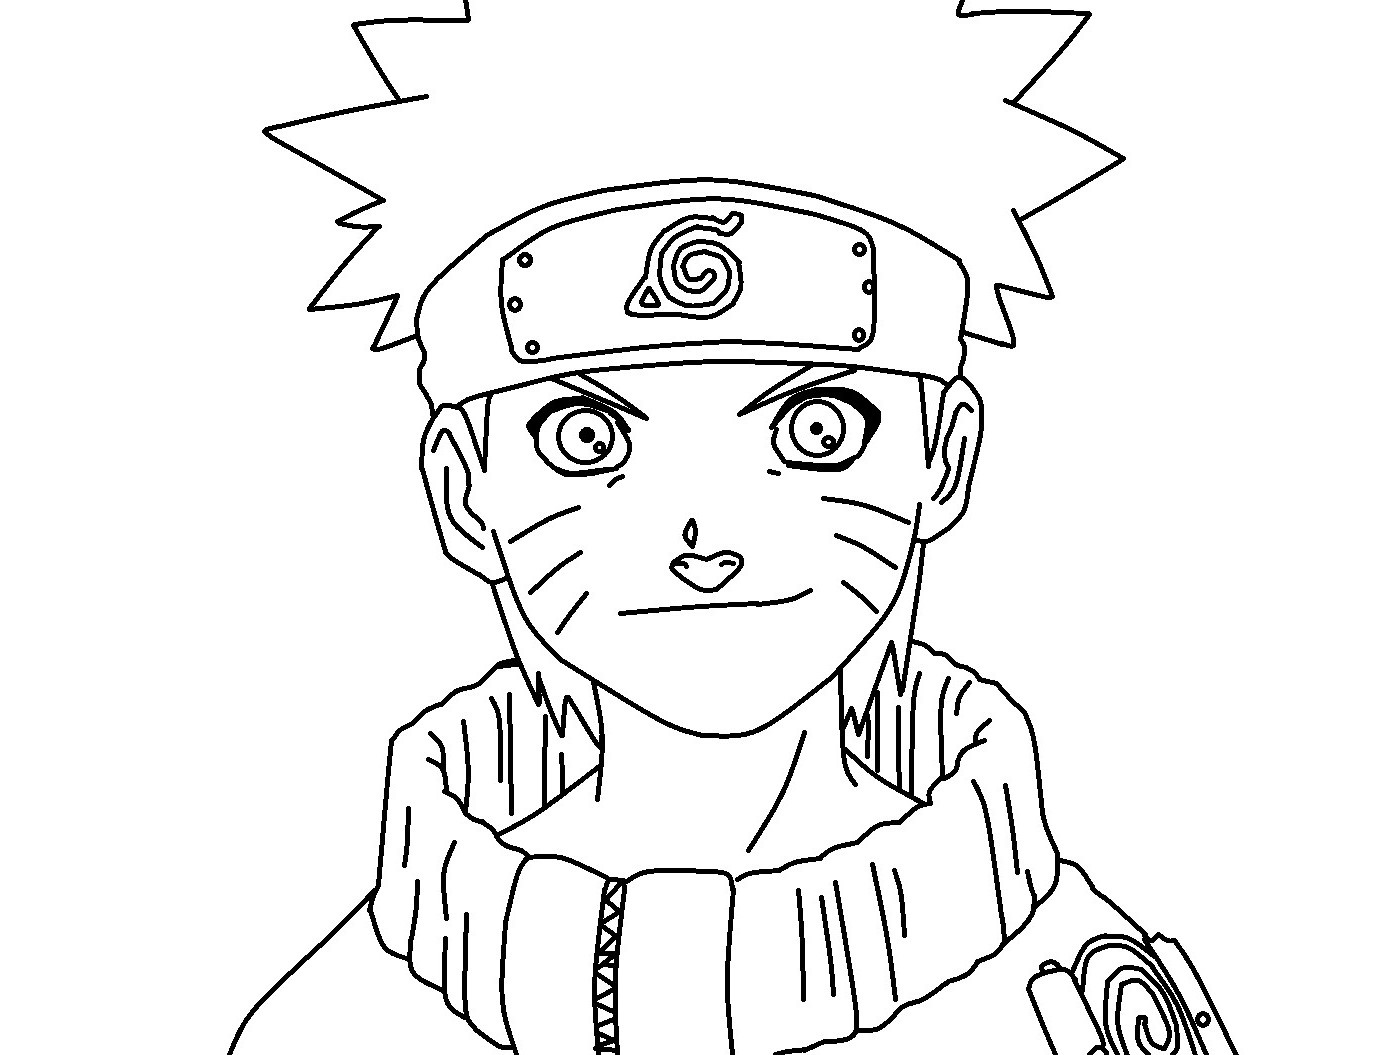 Naruto coloring pages only coloring pages for Anime coloring pages naruto